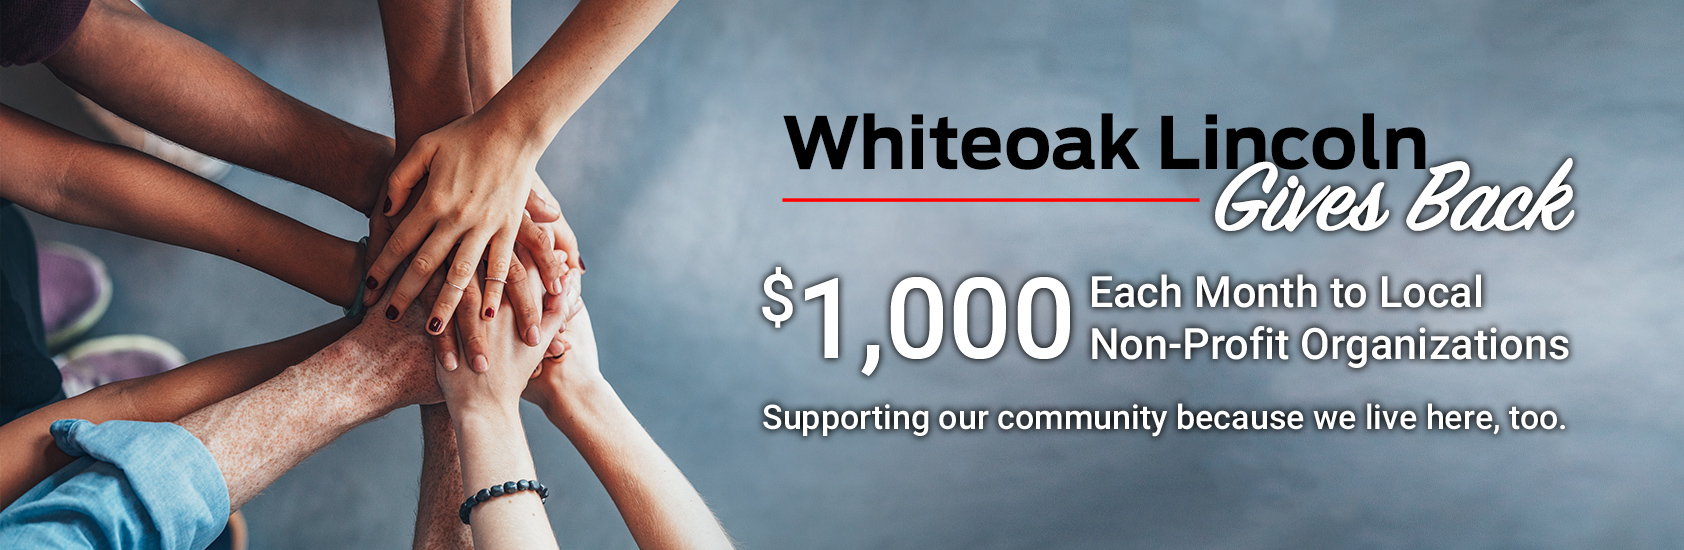 Whiteoak Lincoln Gives Back